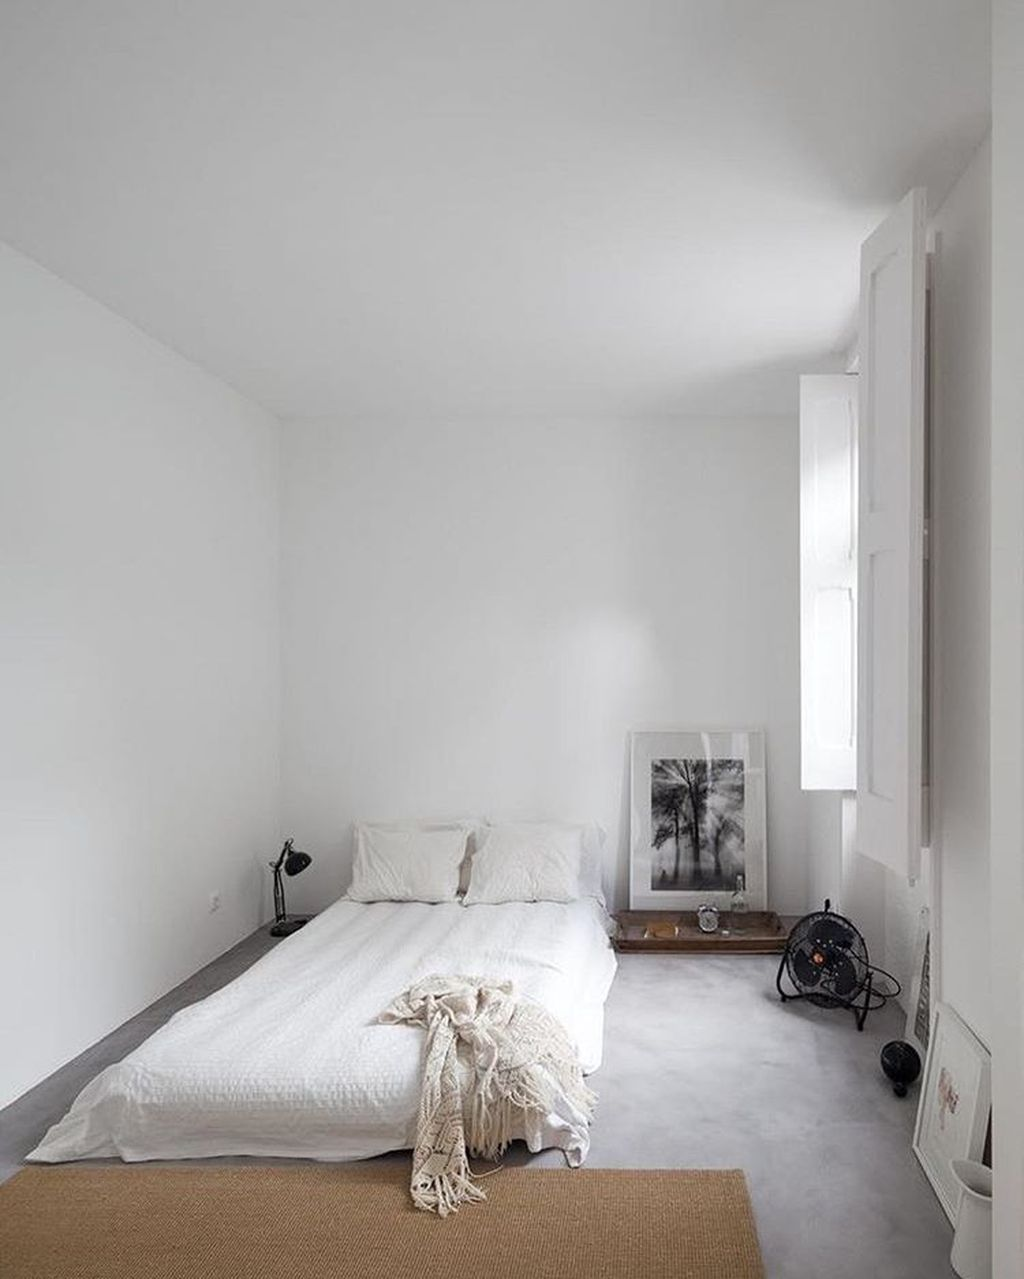 40+ Best Minimalist Bedroom Decoration Ideas That Looks Cool #minimalbedroom